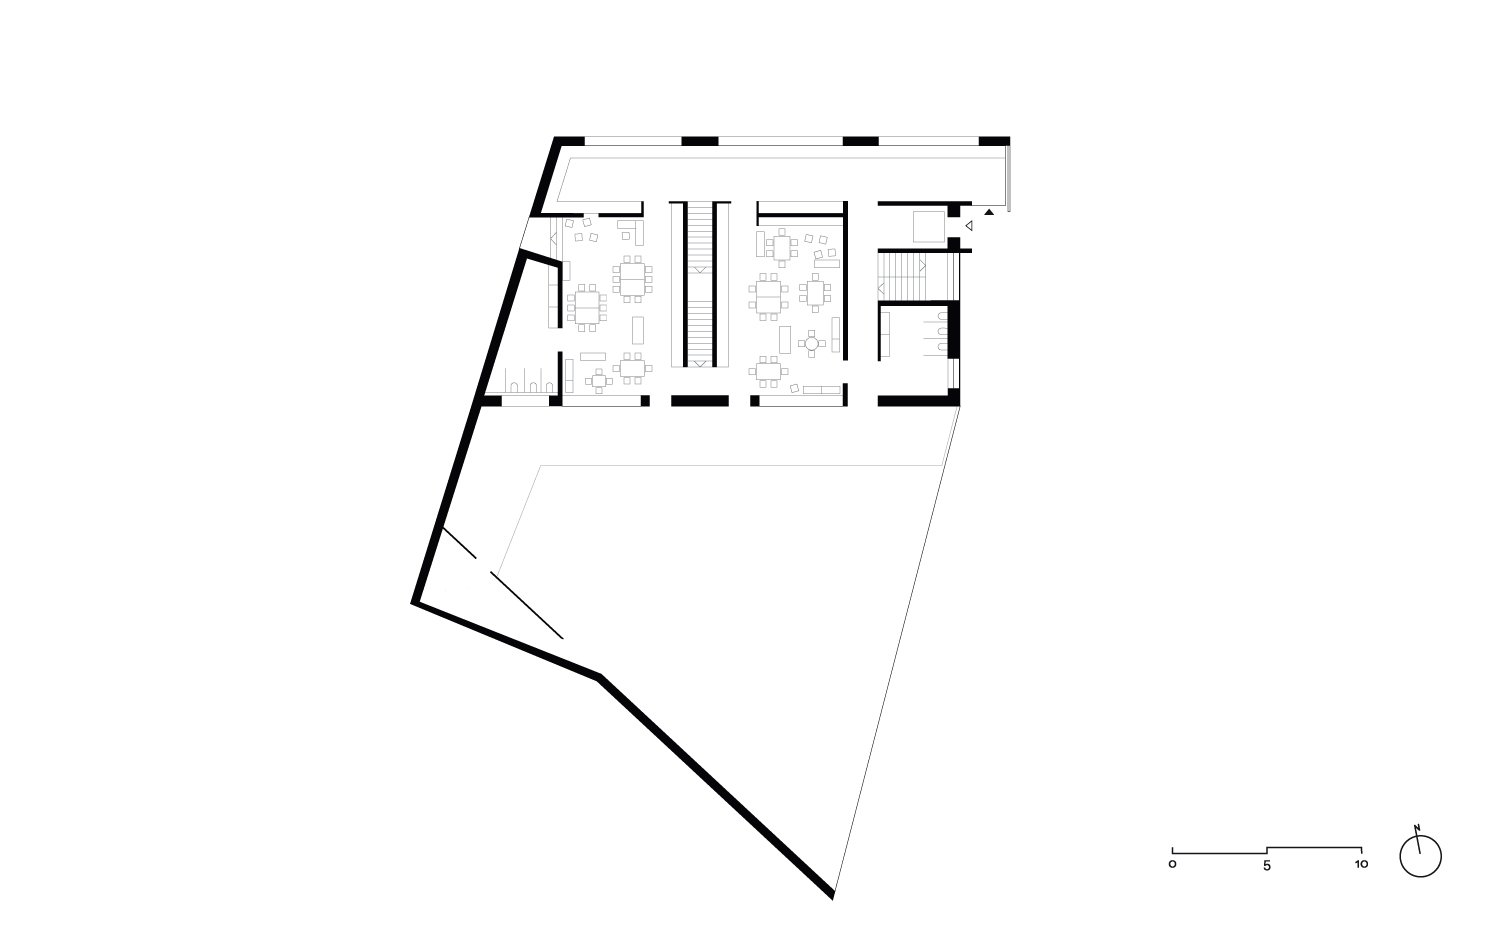 Ground Floor Plan feld72}